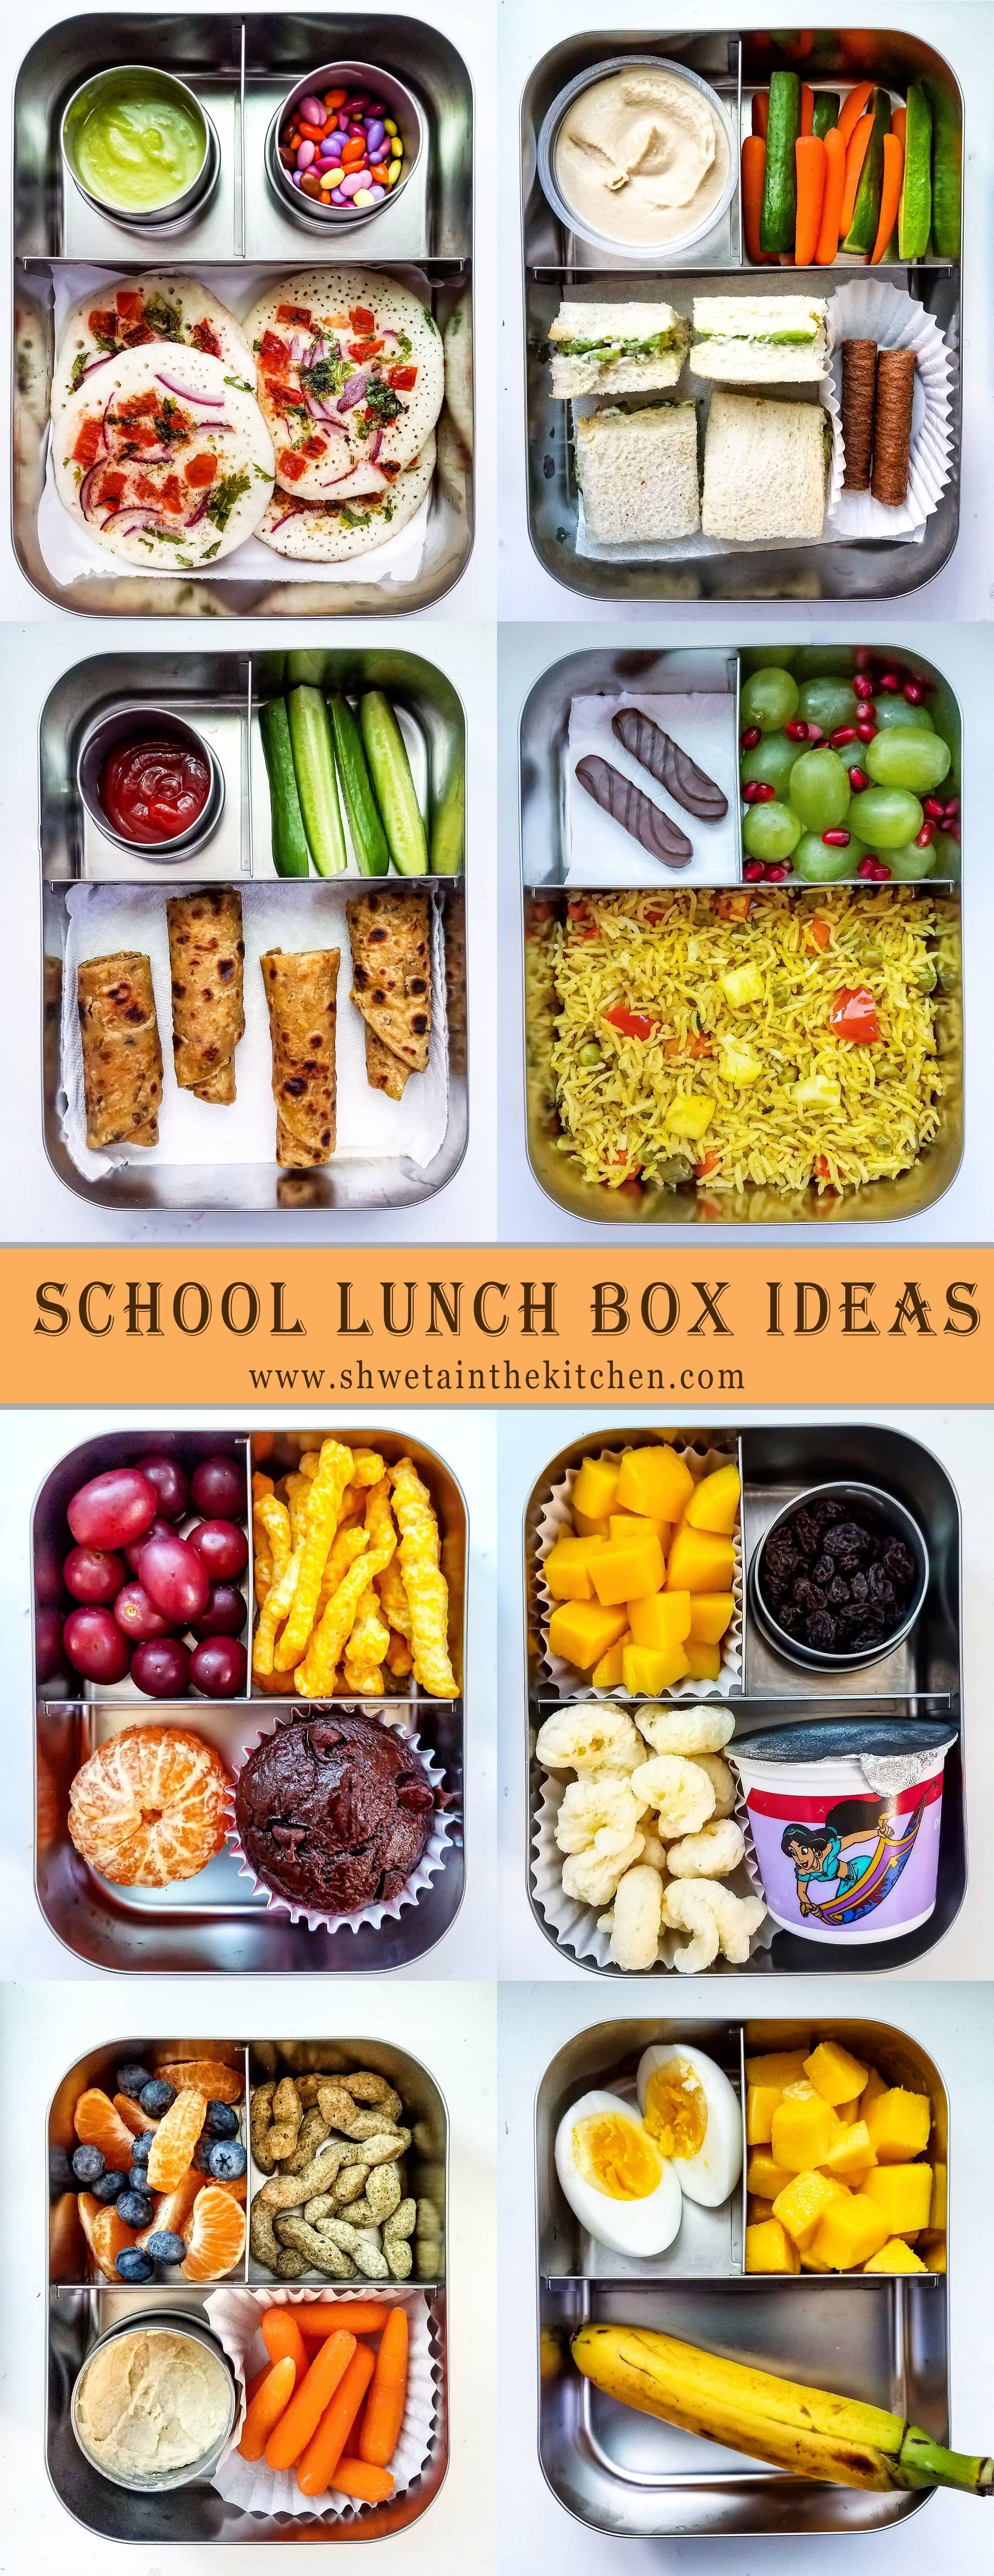 School Lunch Ideas for Kids #schoollunchideasforkids